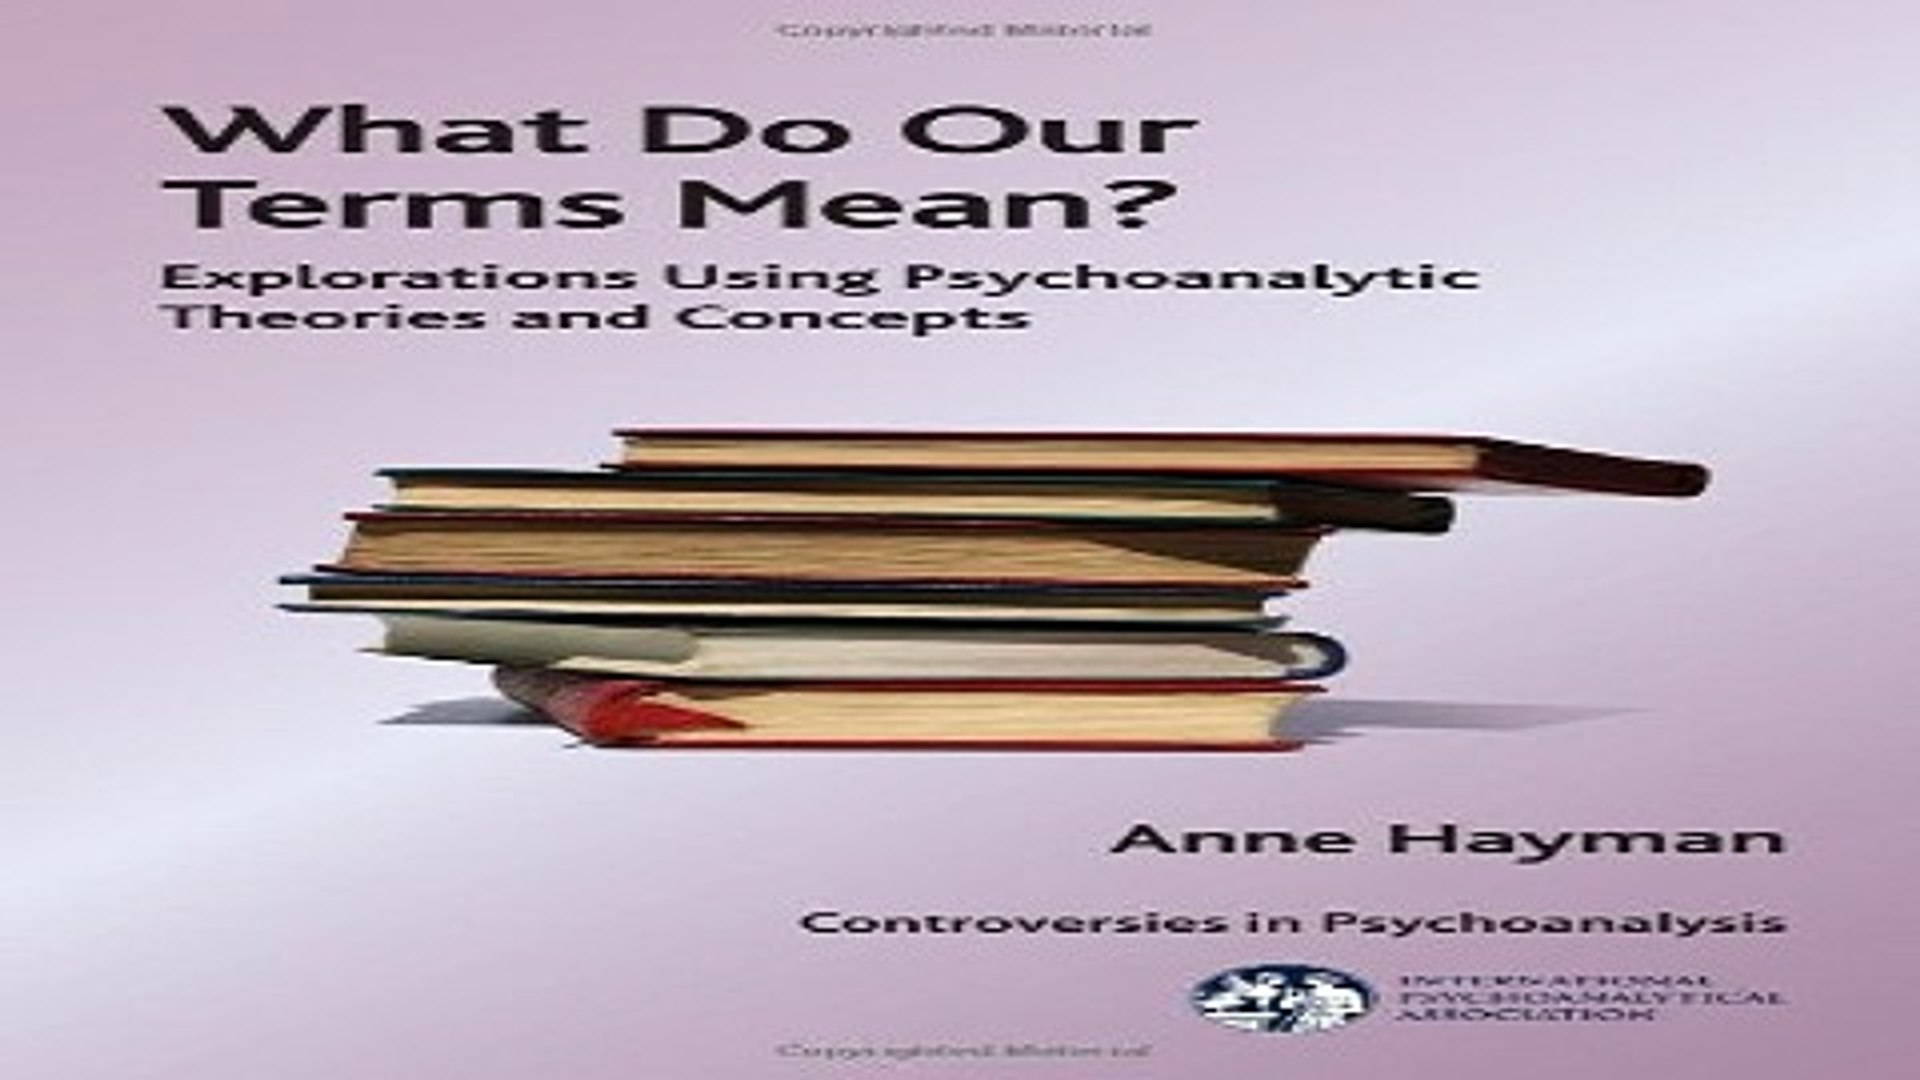 What do our terms mean? : explorations using psychoanalytic theories and concepts